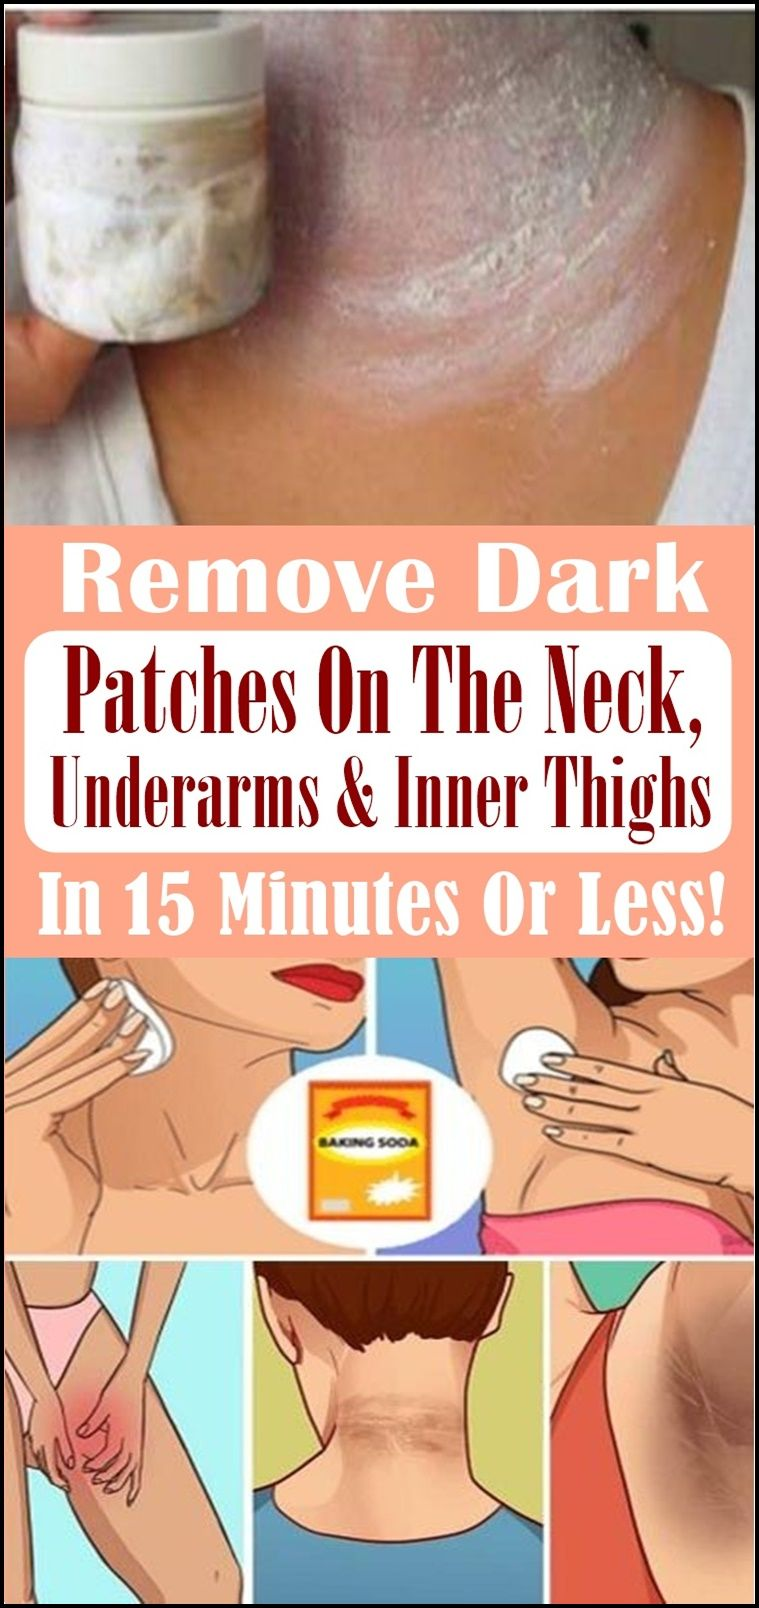 Remove Dark Patches On The Neck, Underarms & Inner Thighs ...